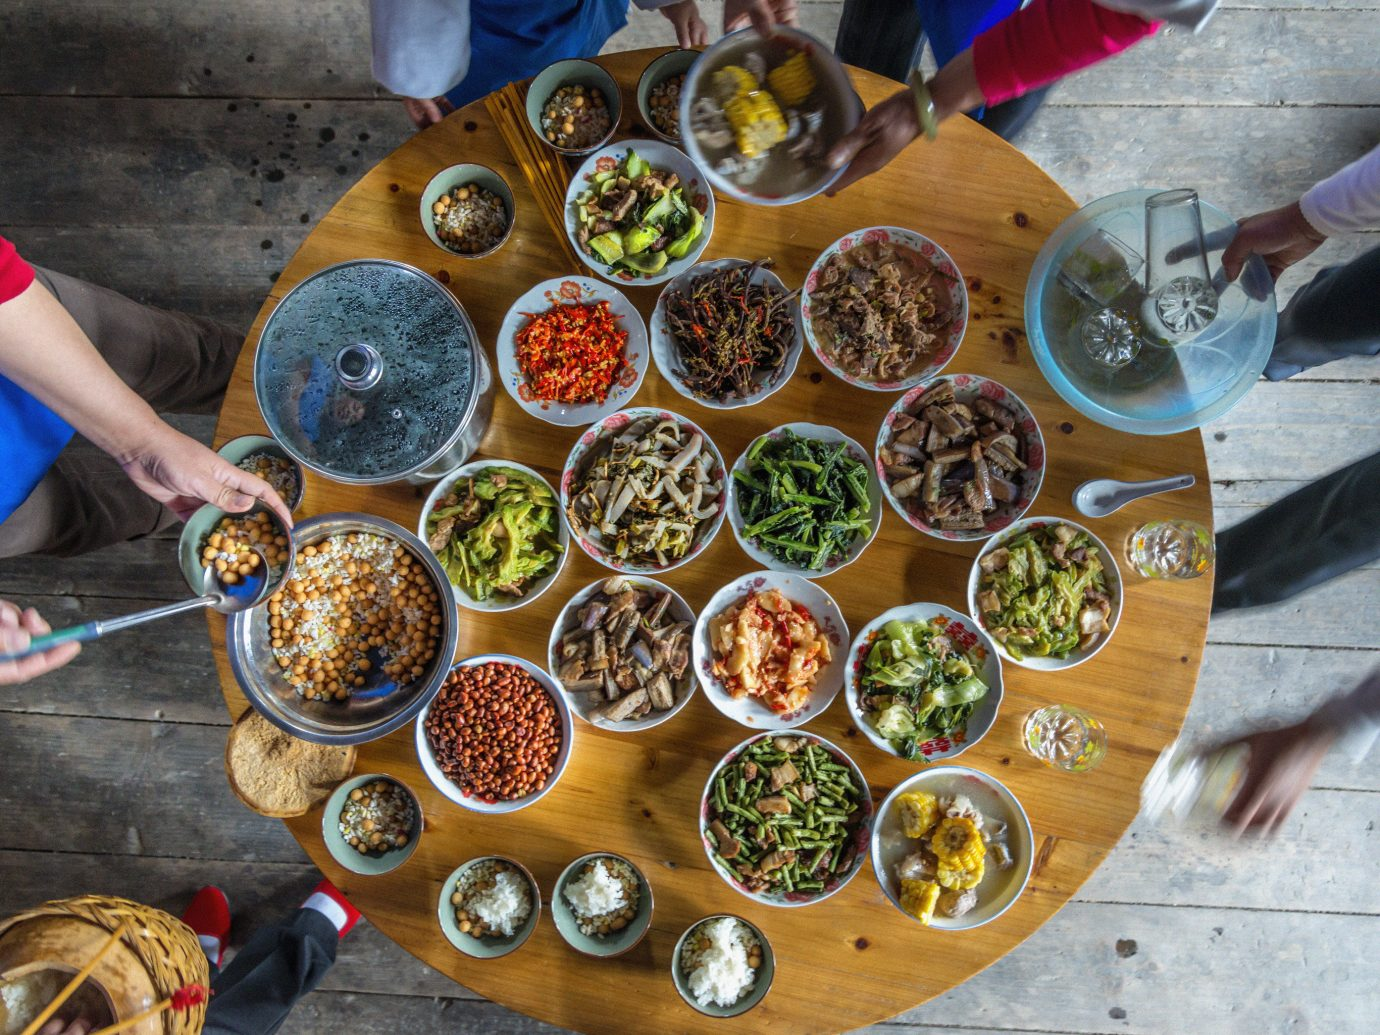 Offbeat person food public space dish preparing market meal meat